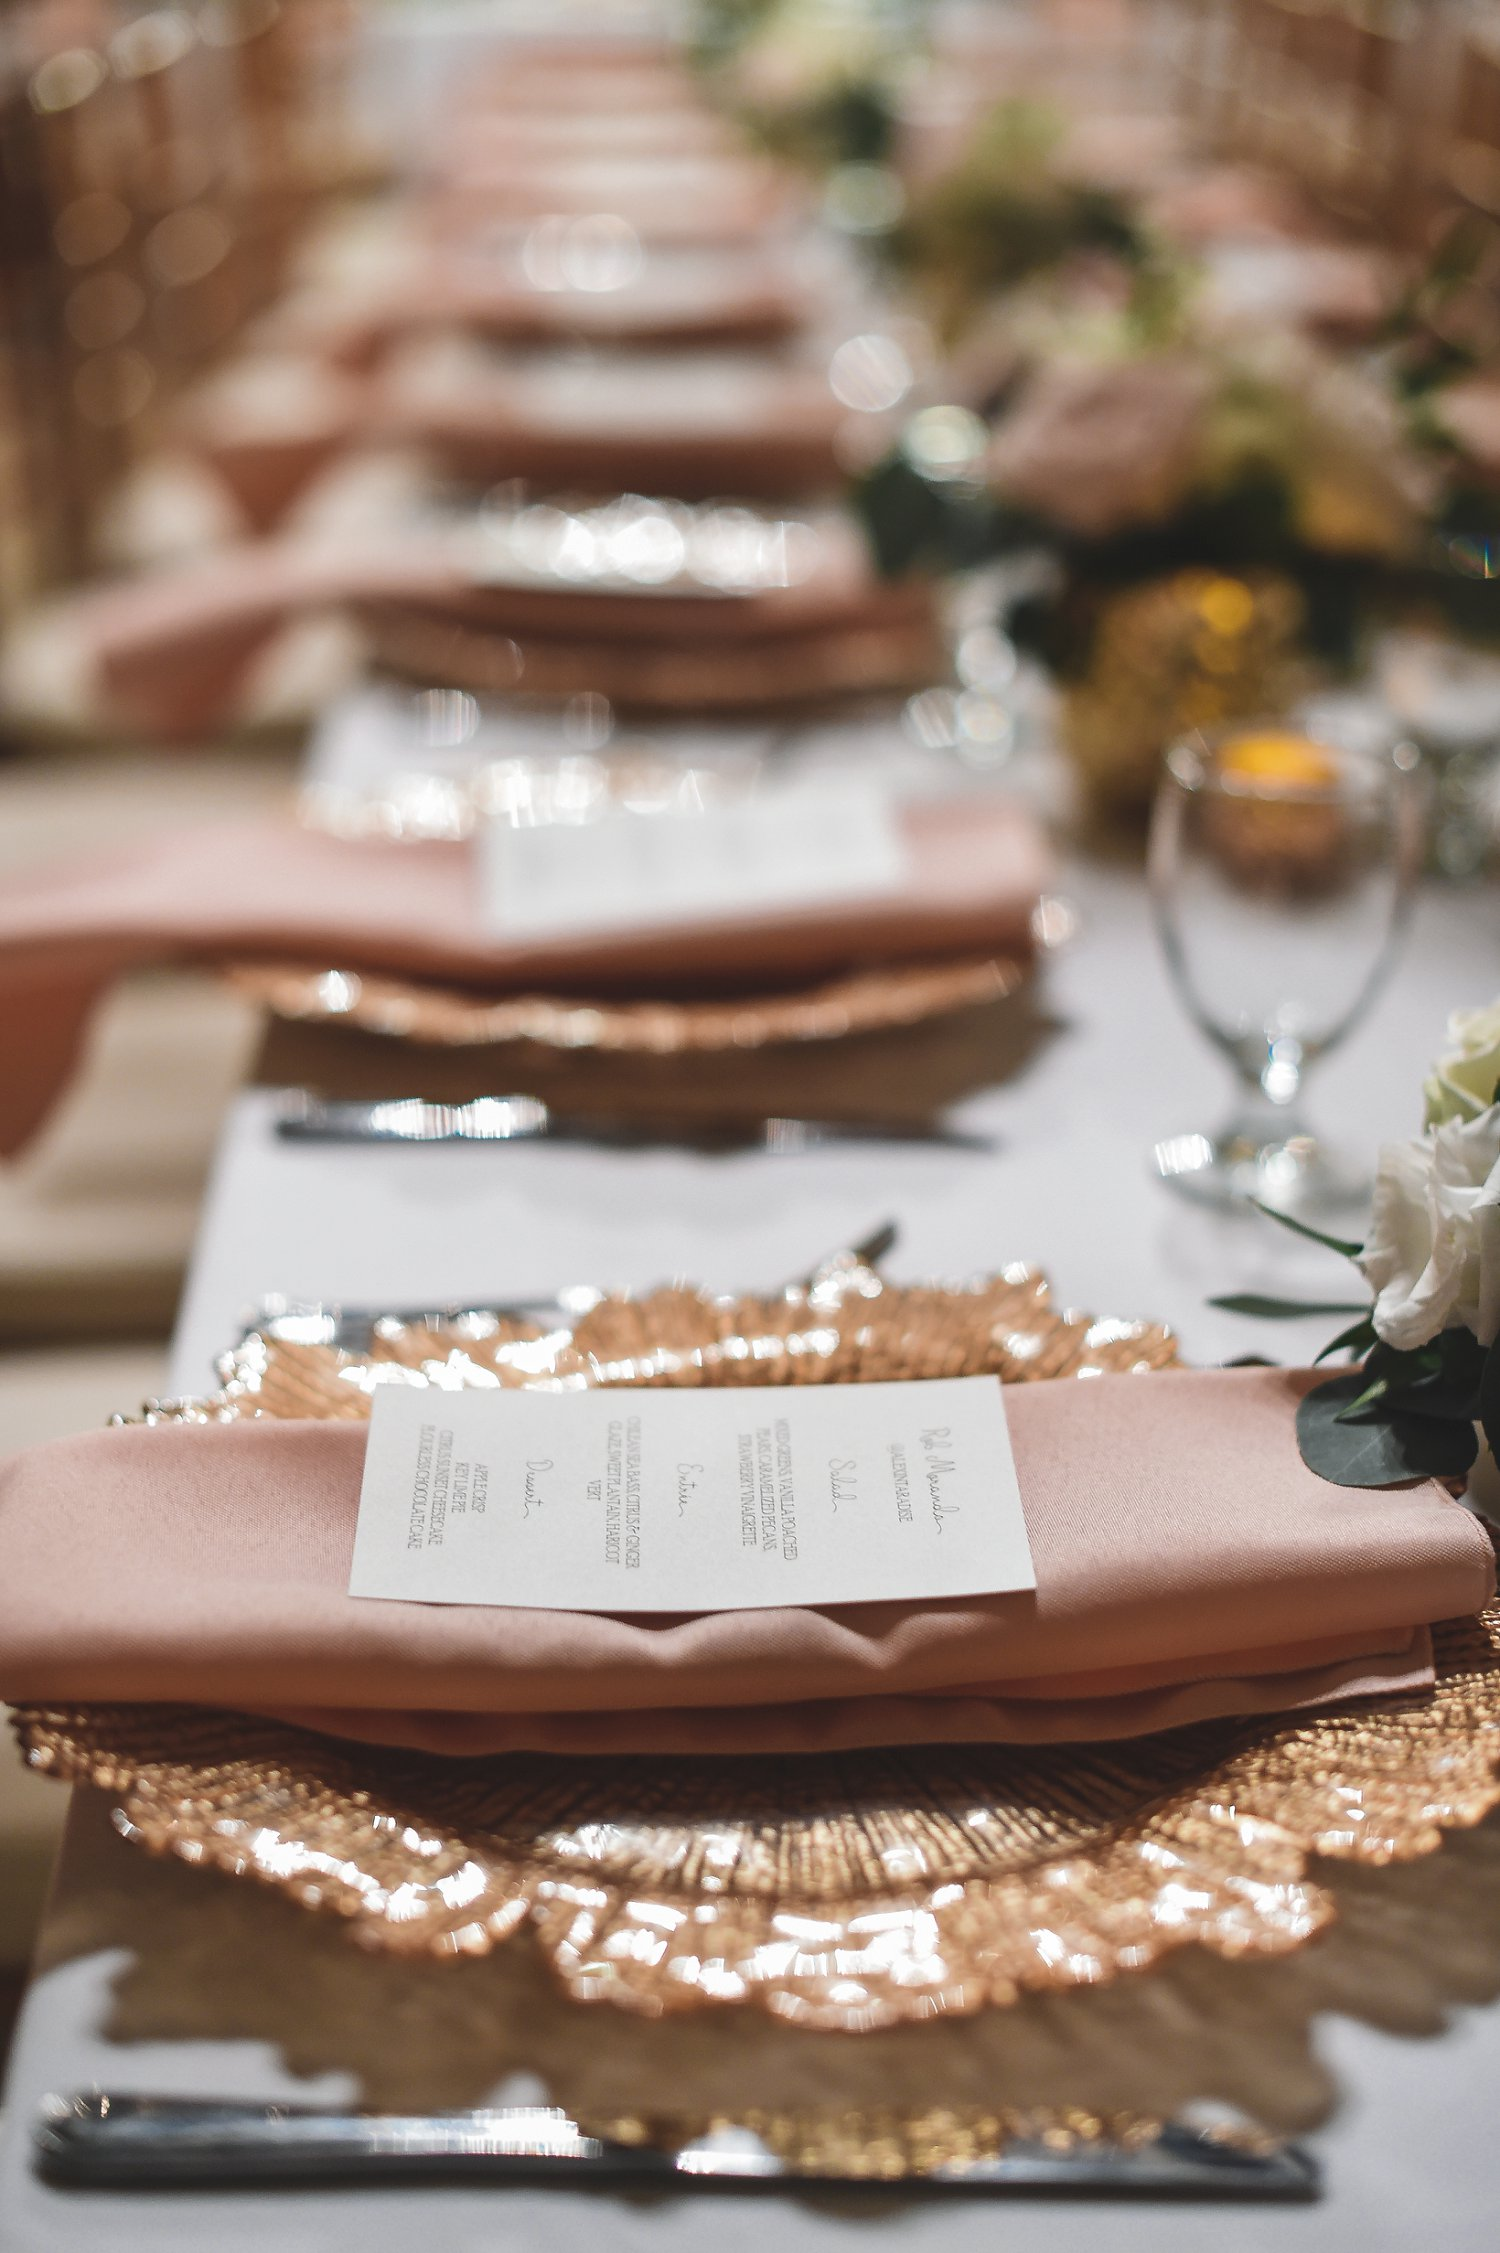 Destination wedding reception with blush napkins and gold chargers.